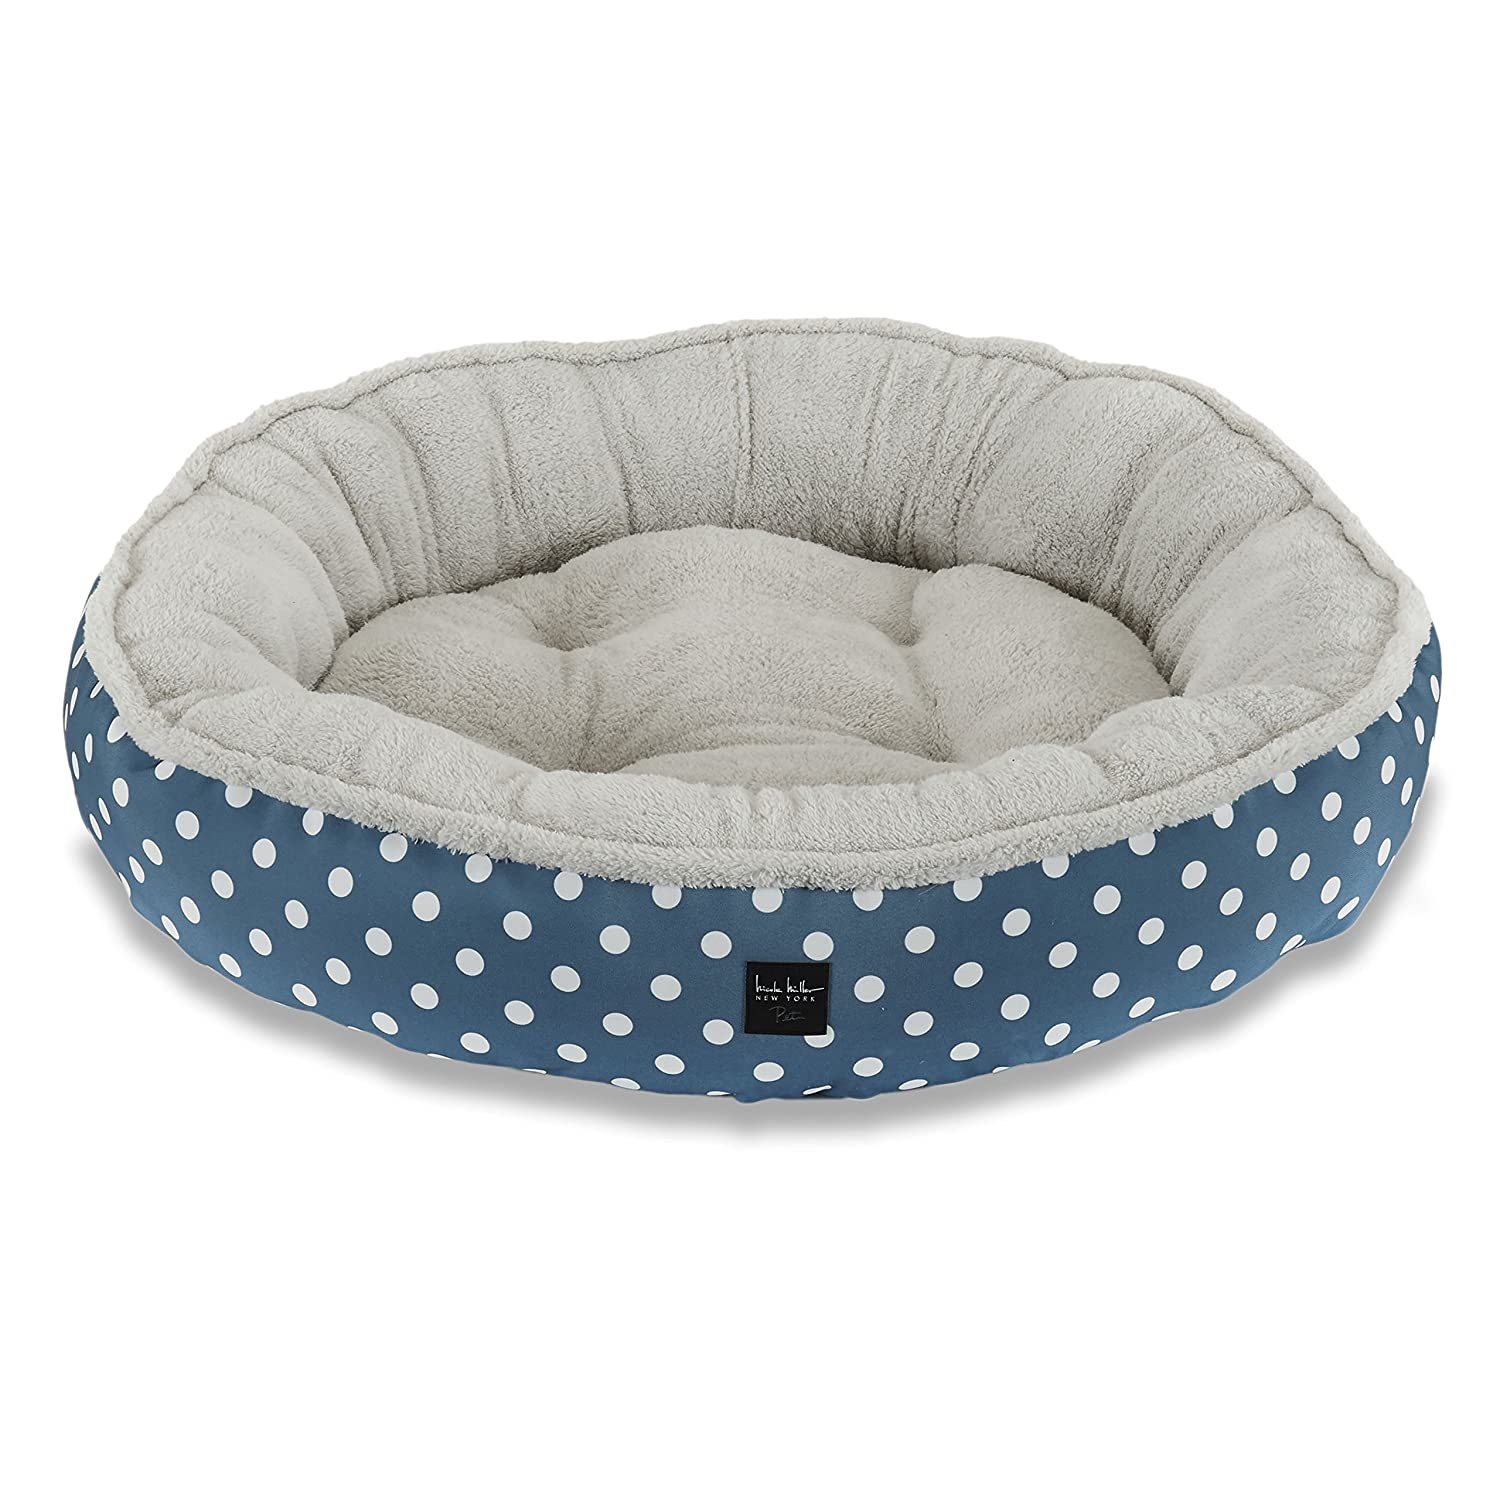 bluee Polkadots 30 Inch Round bluee Polkadots 30 Inch Round Home Dynamix HD119-309 Nicole Miller Comfy Pooch Pet Bed, 30 Inch Round, bluee Polkadots